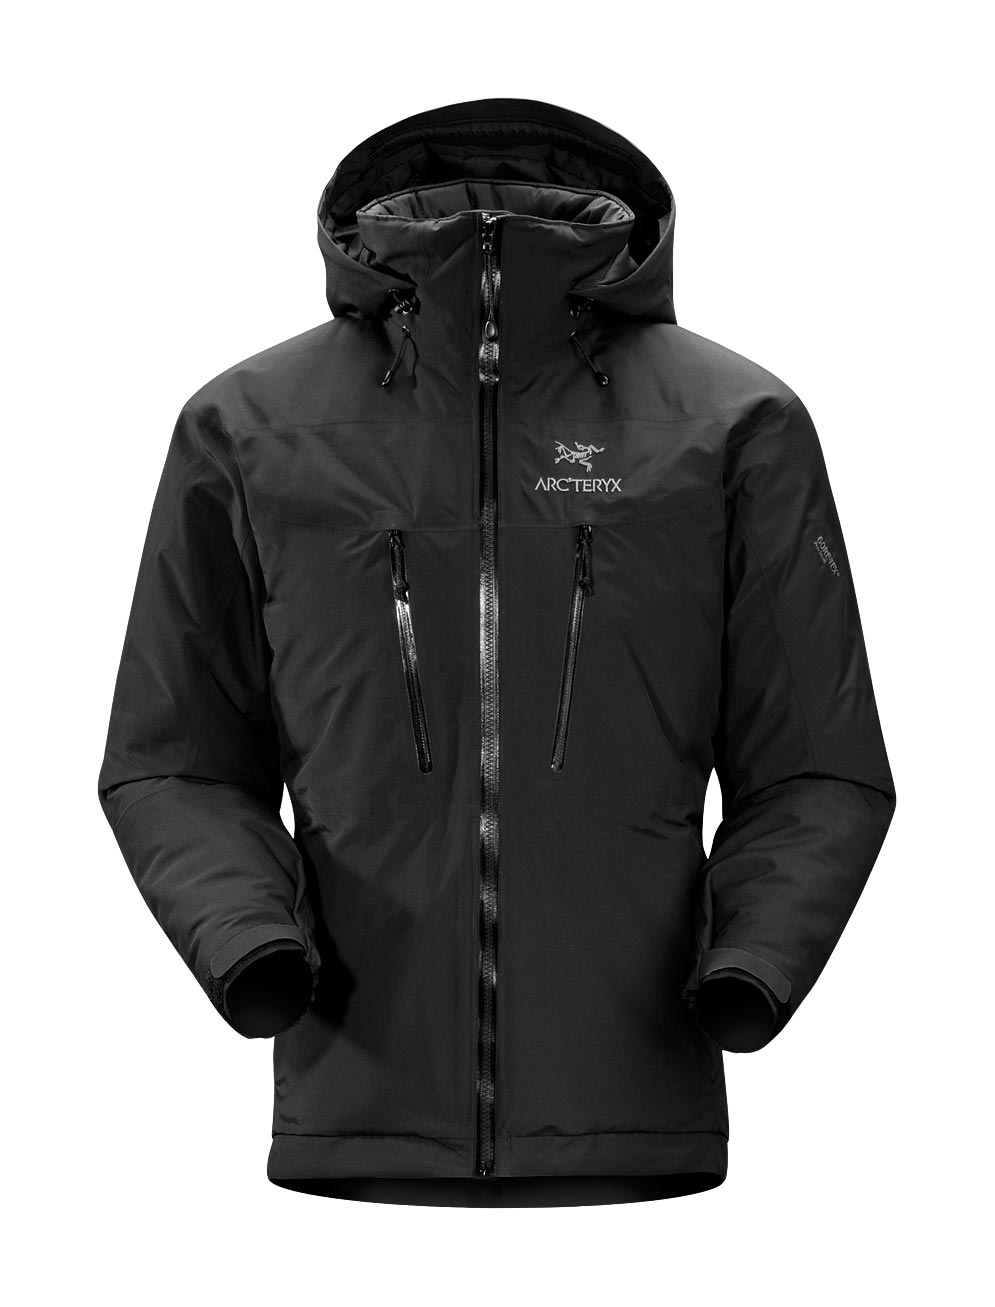 Arcteryx Black Fission SV Jacket